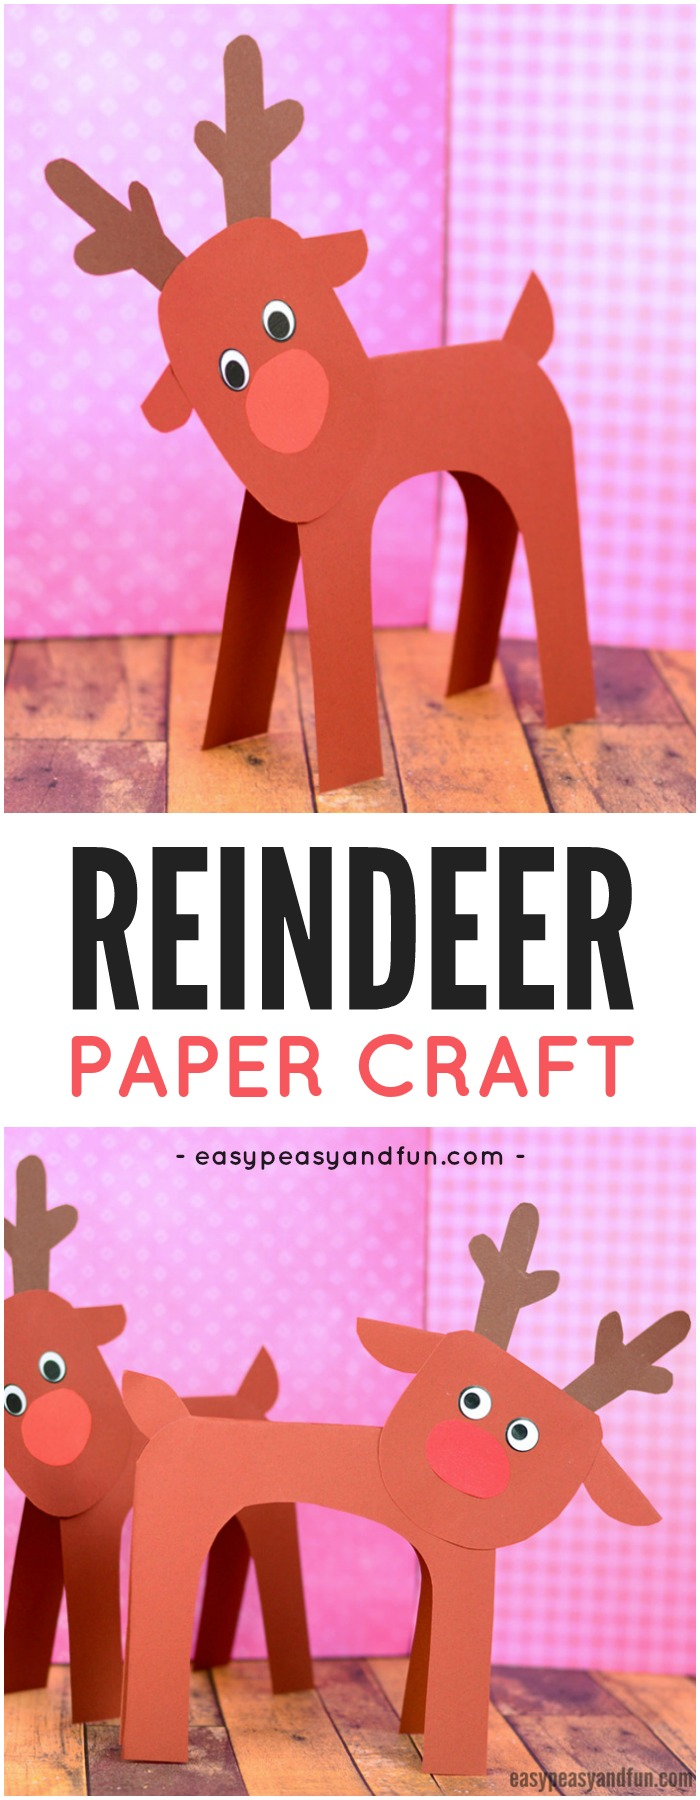 Super Simple Black Cat Paper Craft. Fun Christmas Paper Craft Idea for Kids to Make. #reindeercraftsforkids #papercraftsforkids #Christmascraftsforkids